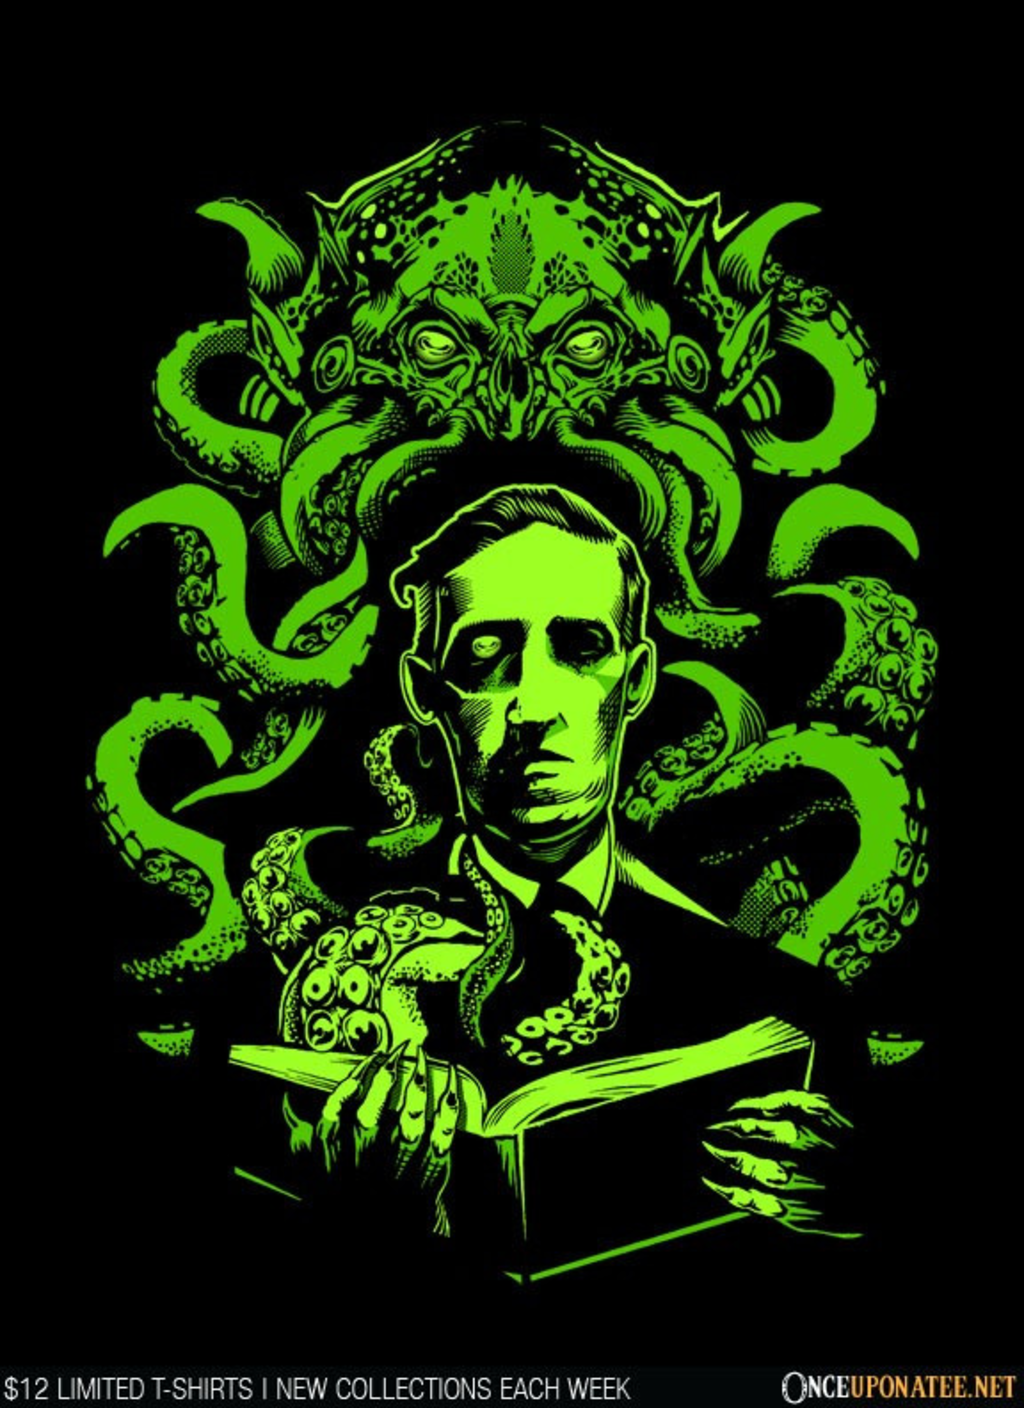 Once Upon a Tee: Love Cthulhu